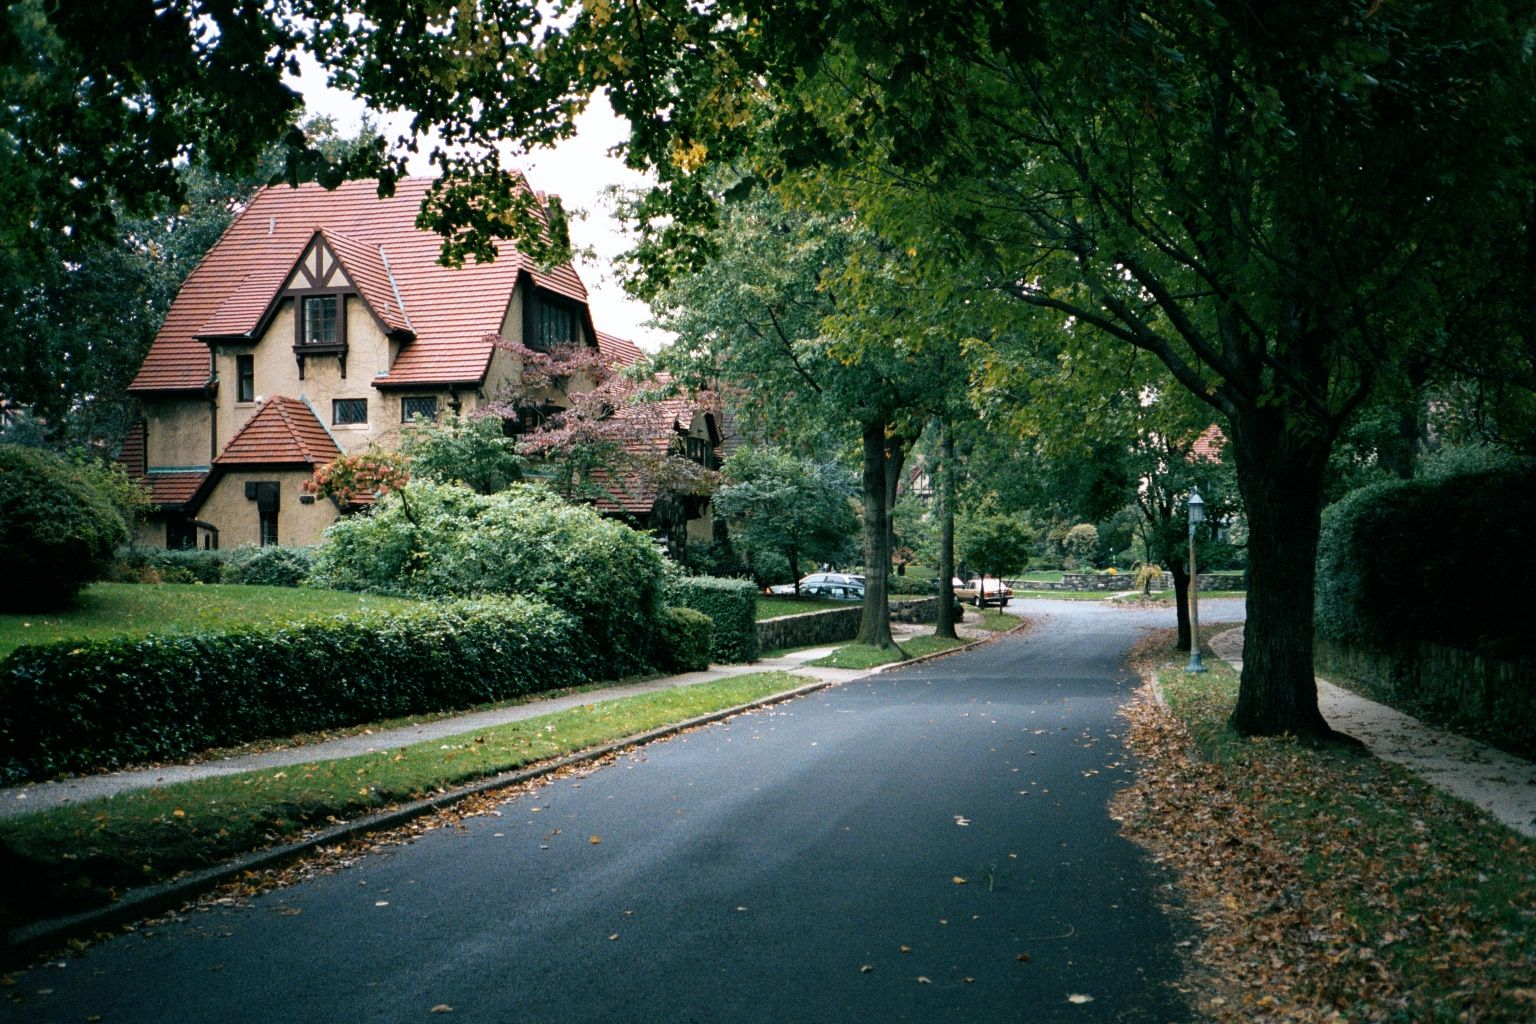 20 Memories To Make You Miss Forest Hills, N.Y. | Hill garden, City ...